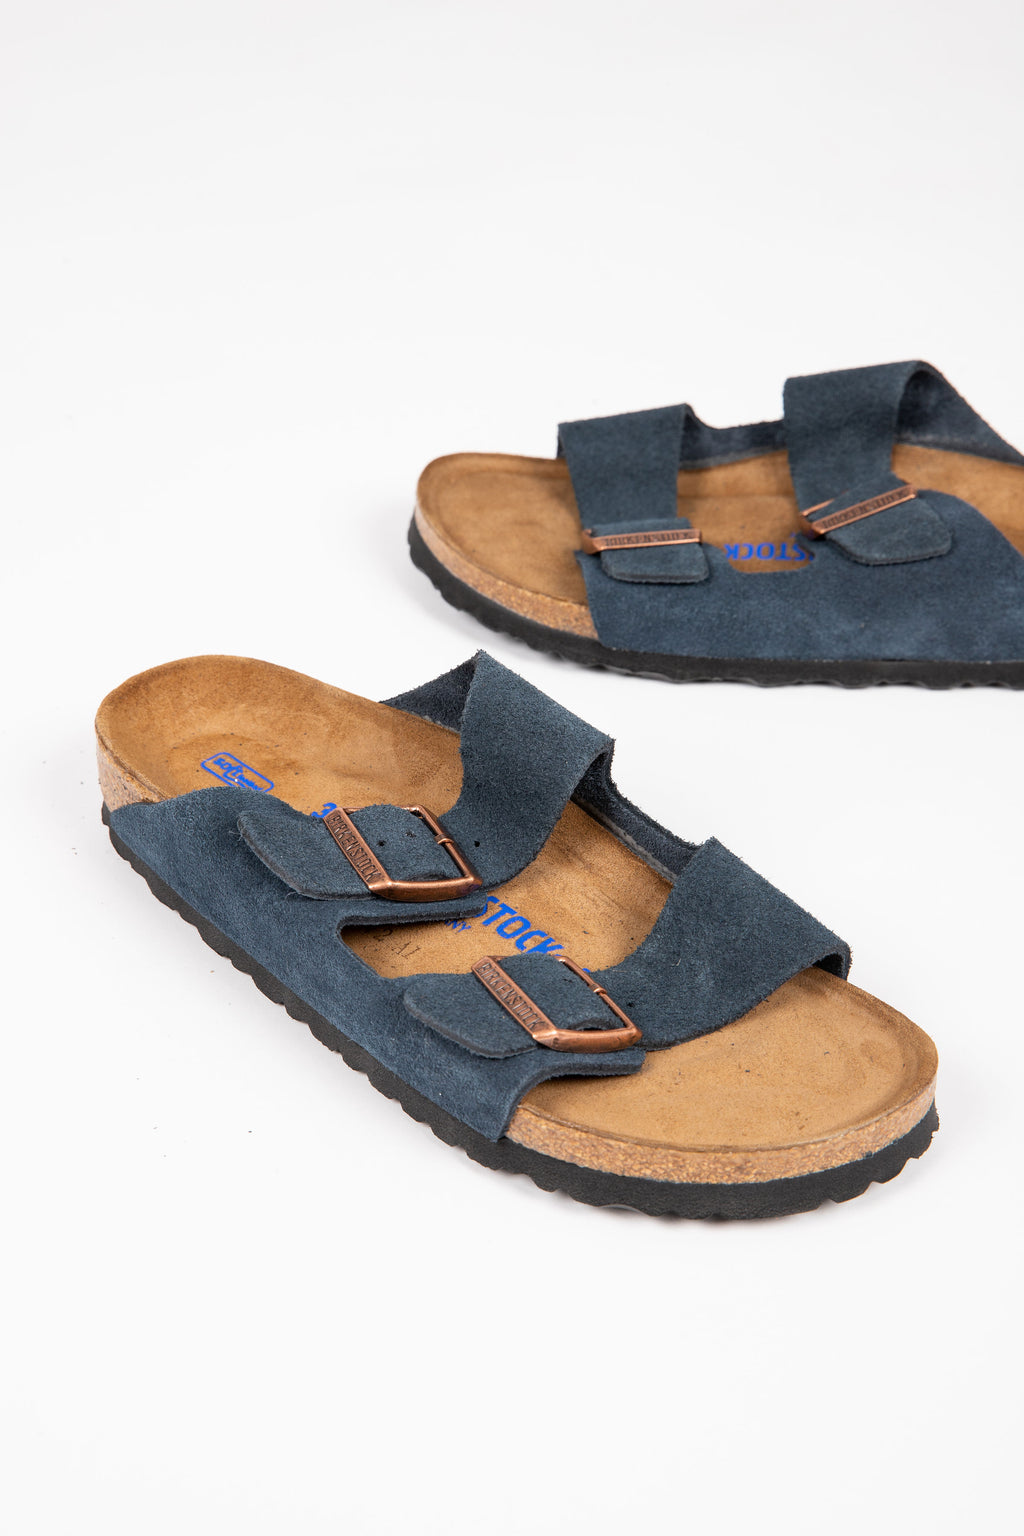 Birkenstock: Arizona Soft Footbed Suede Leather in Navy (Narrow Fit)